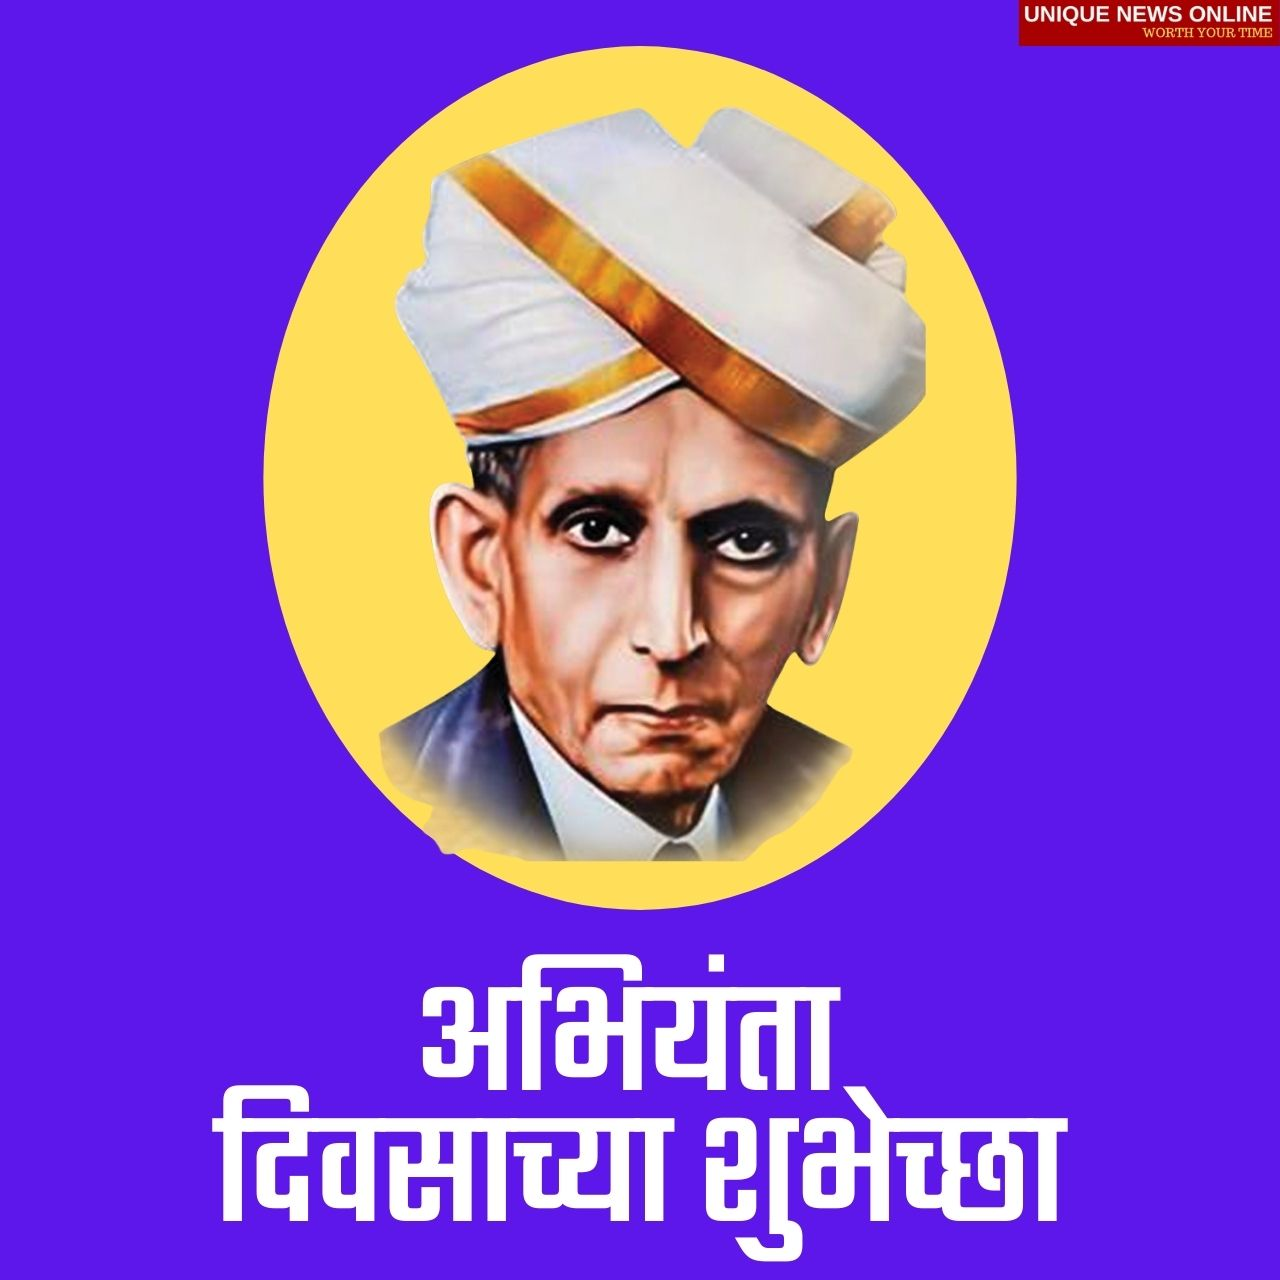 Engineer's Day 2021 Marathi Quotes, Wishes, Images, Messages, Greetings, and Poster